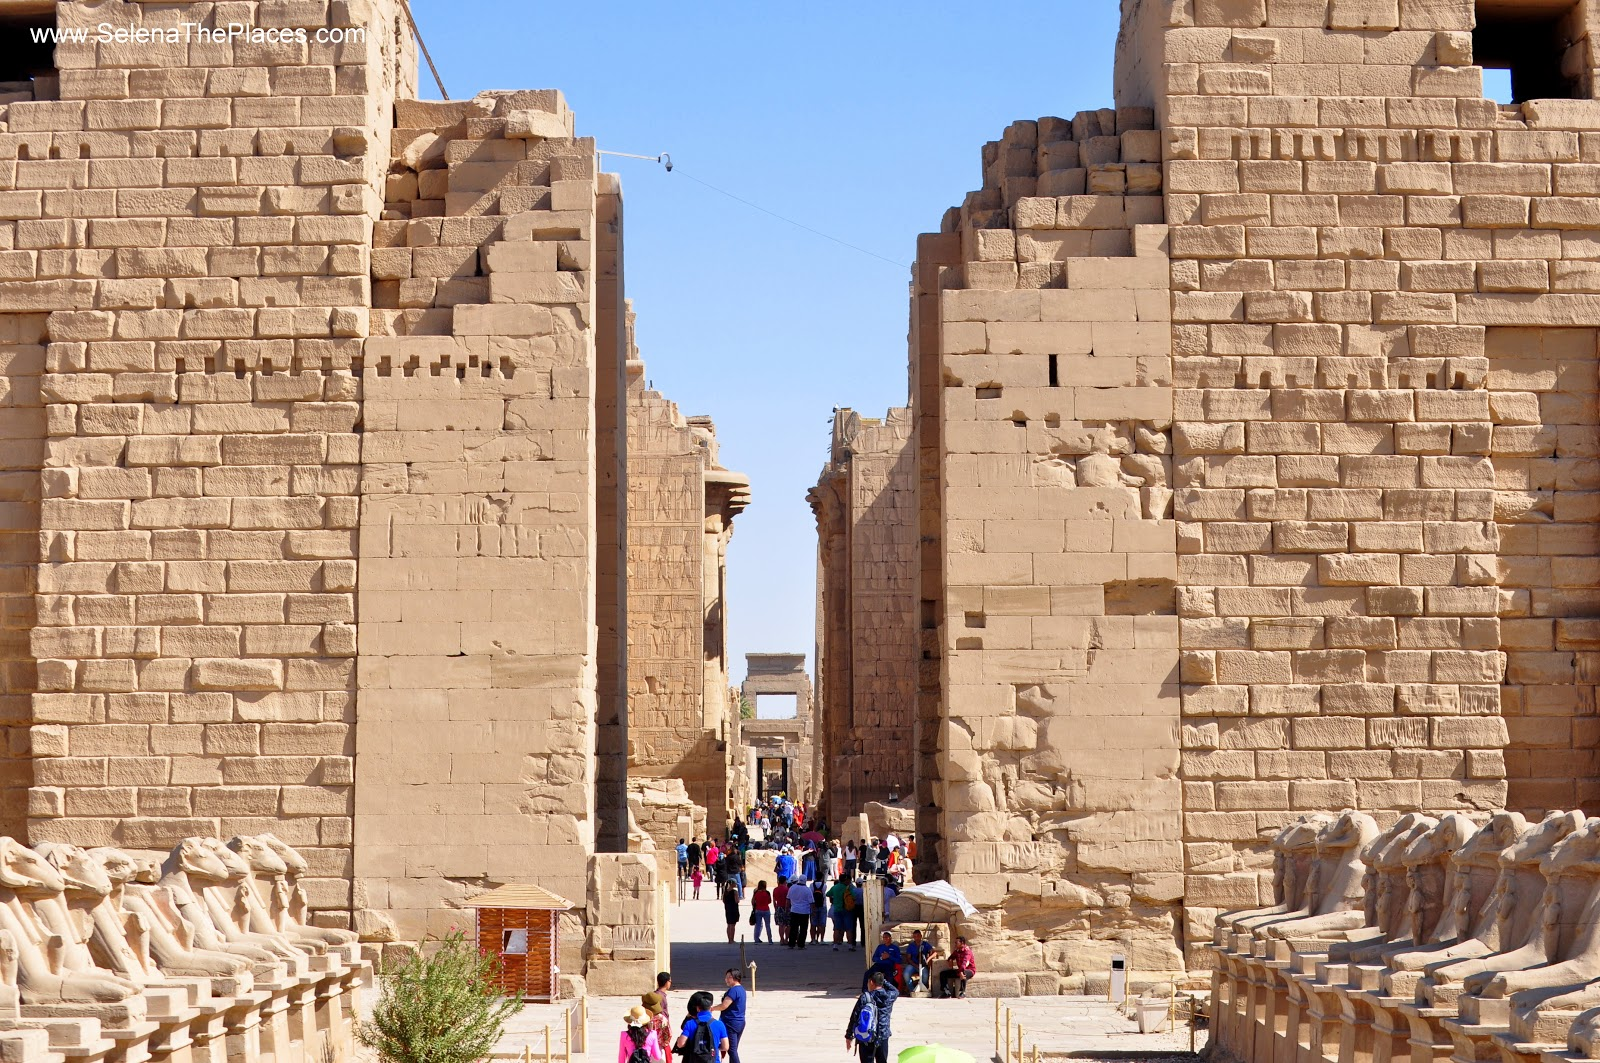 The Temple of Karnak in Luxor, Egypt